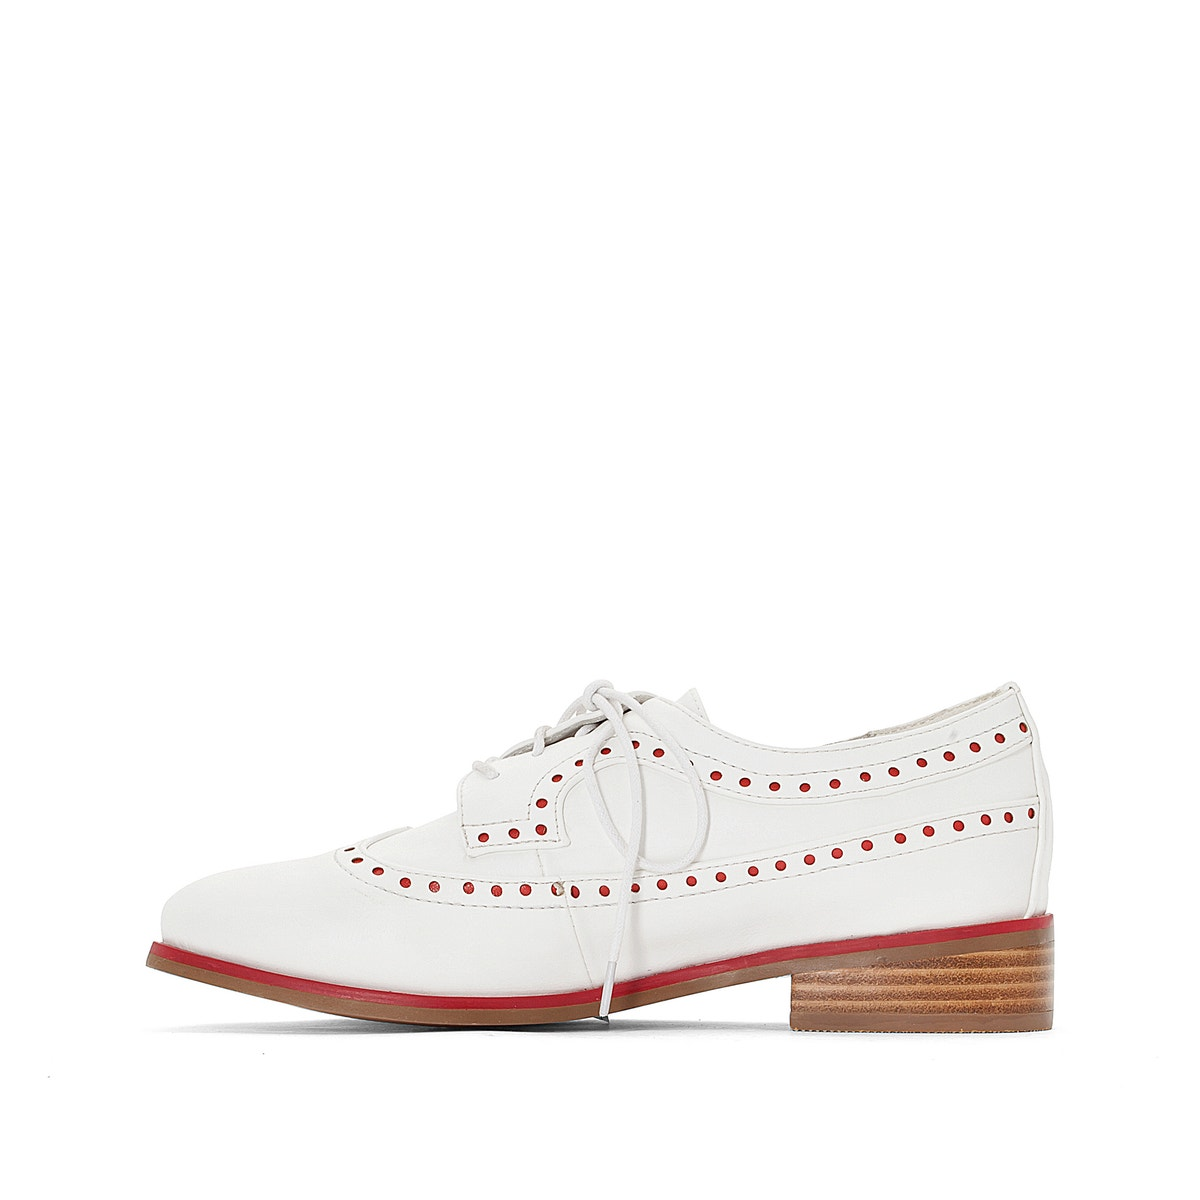 La ROToute Collections Damenschuhe Perforated Perforated Perforated Brogues cbf583